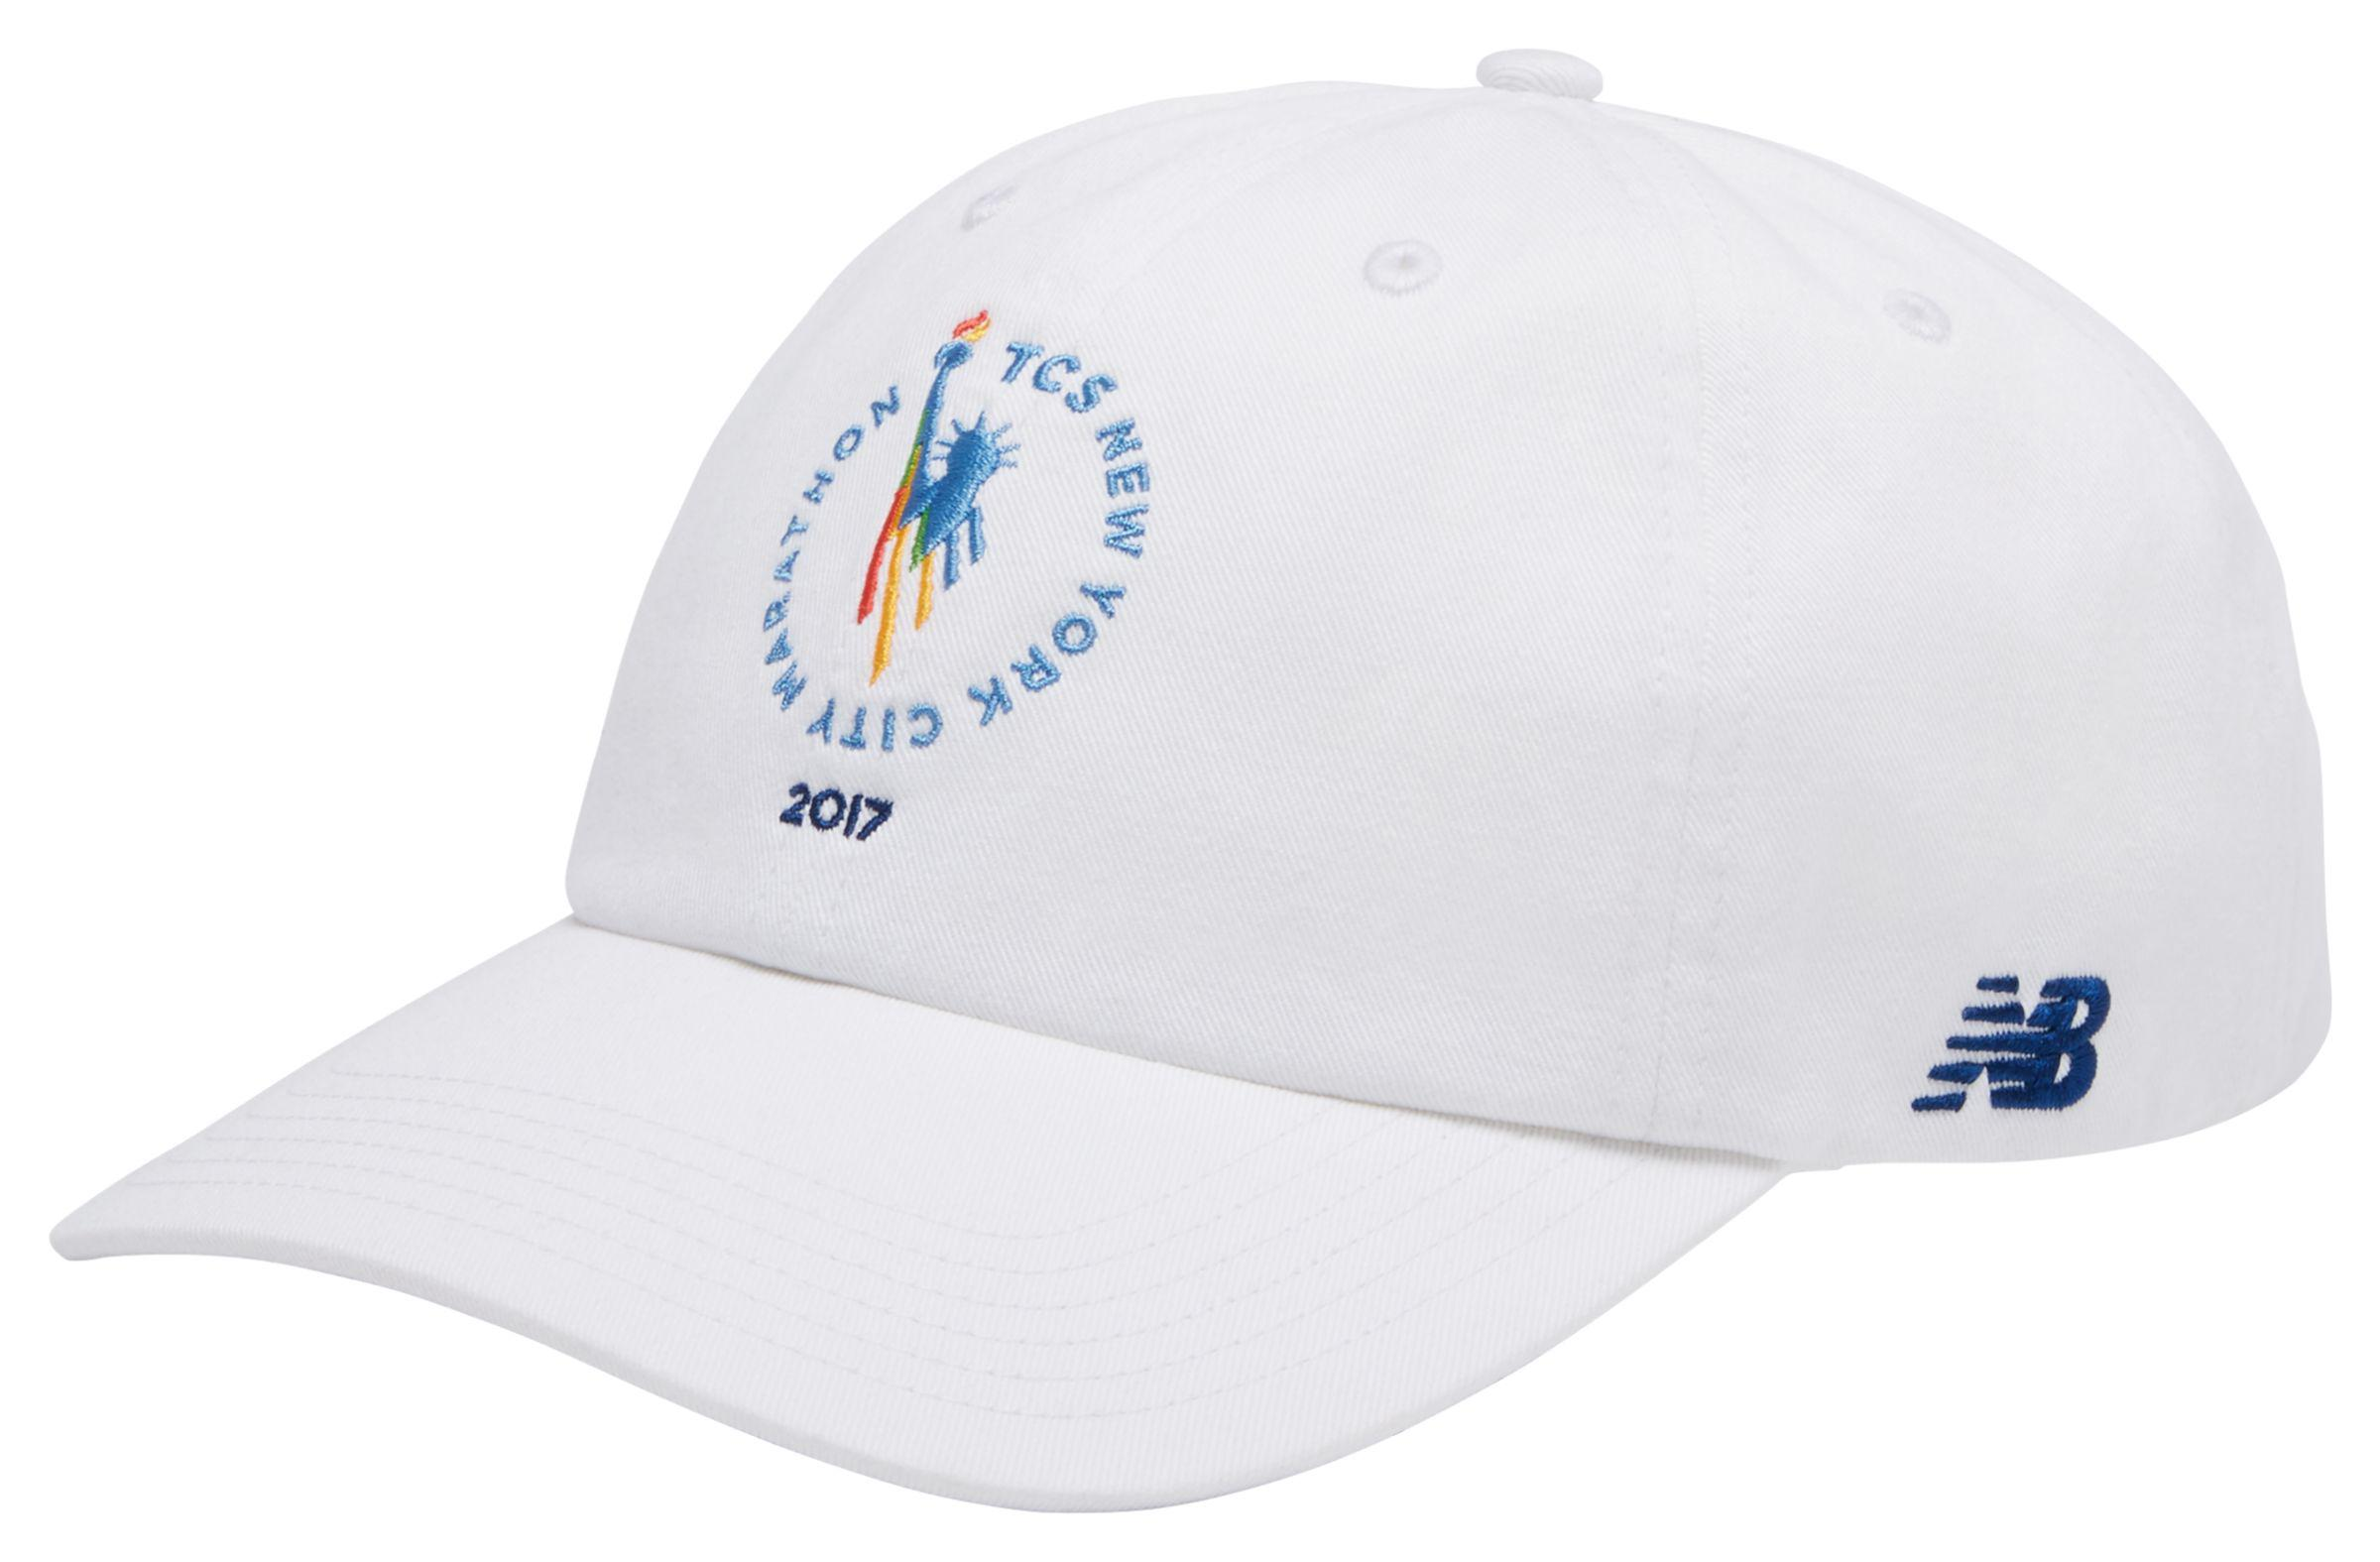 2d27657bdeaa4 Lyst - New Balance Nyc Marathon 6 Panel Curved Brim Finisher Cap in ...